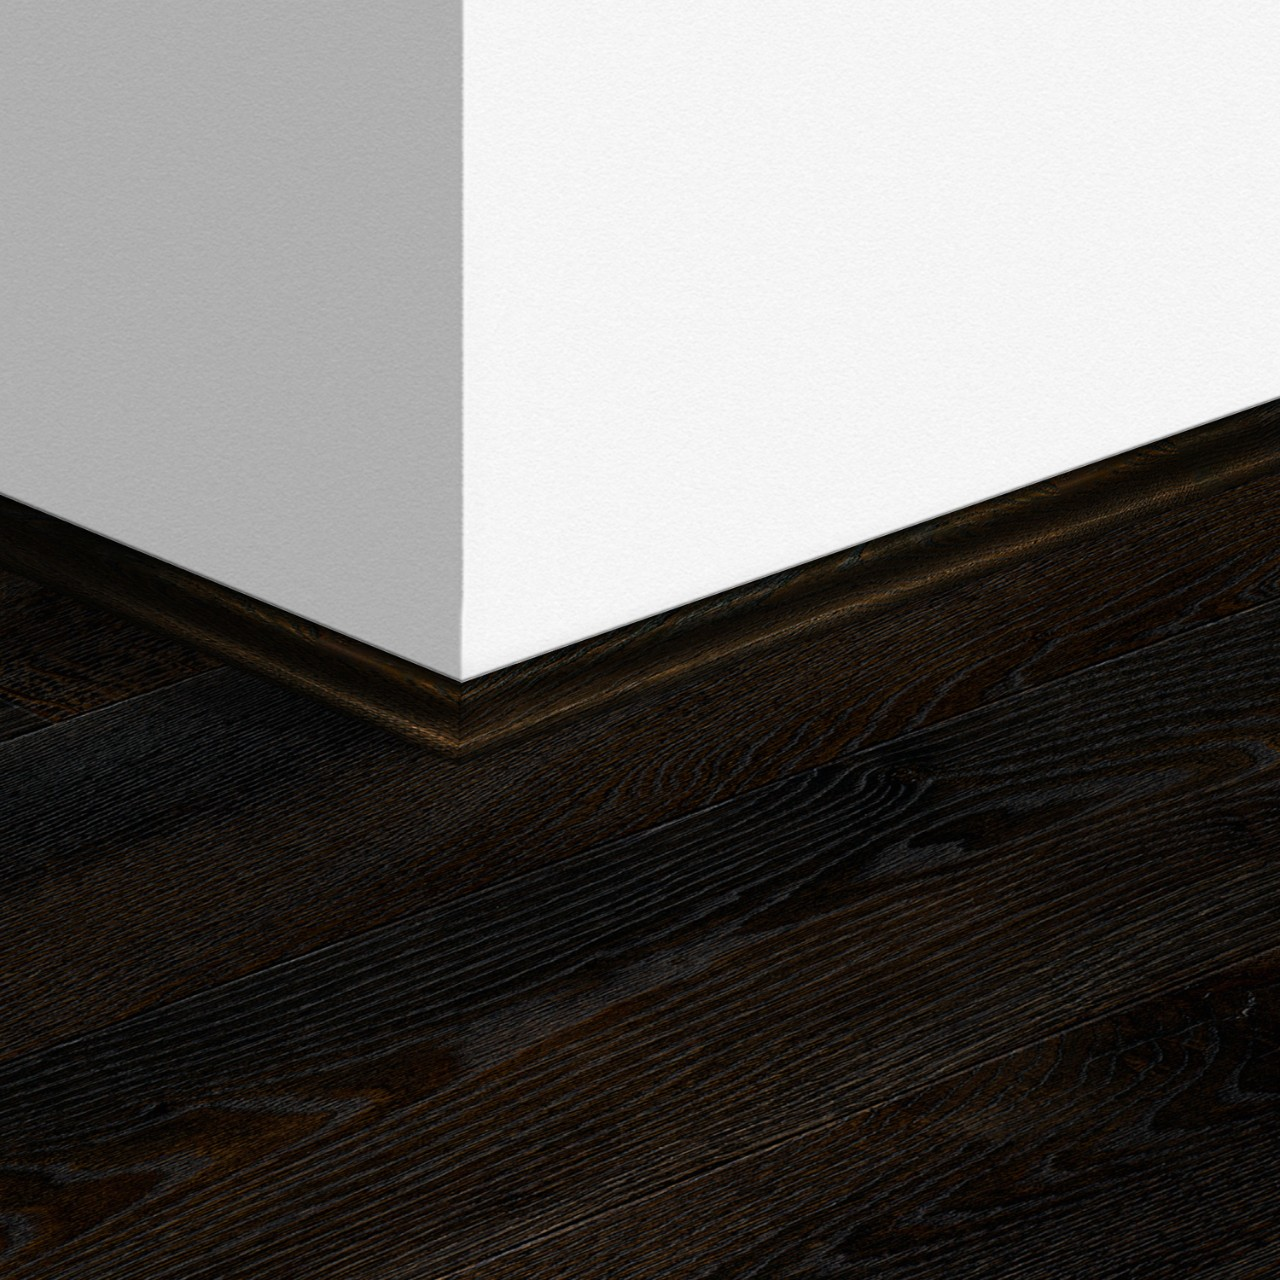 QSWSCOT Parquet Accessories Scotia (matching colour) QSWSCOT03889